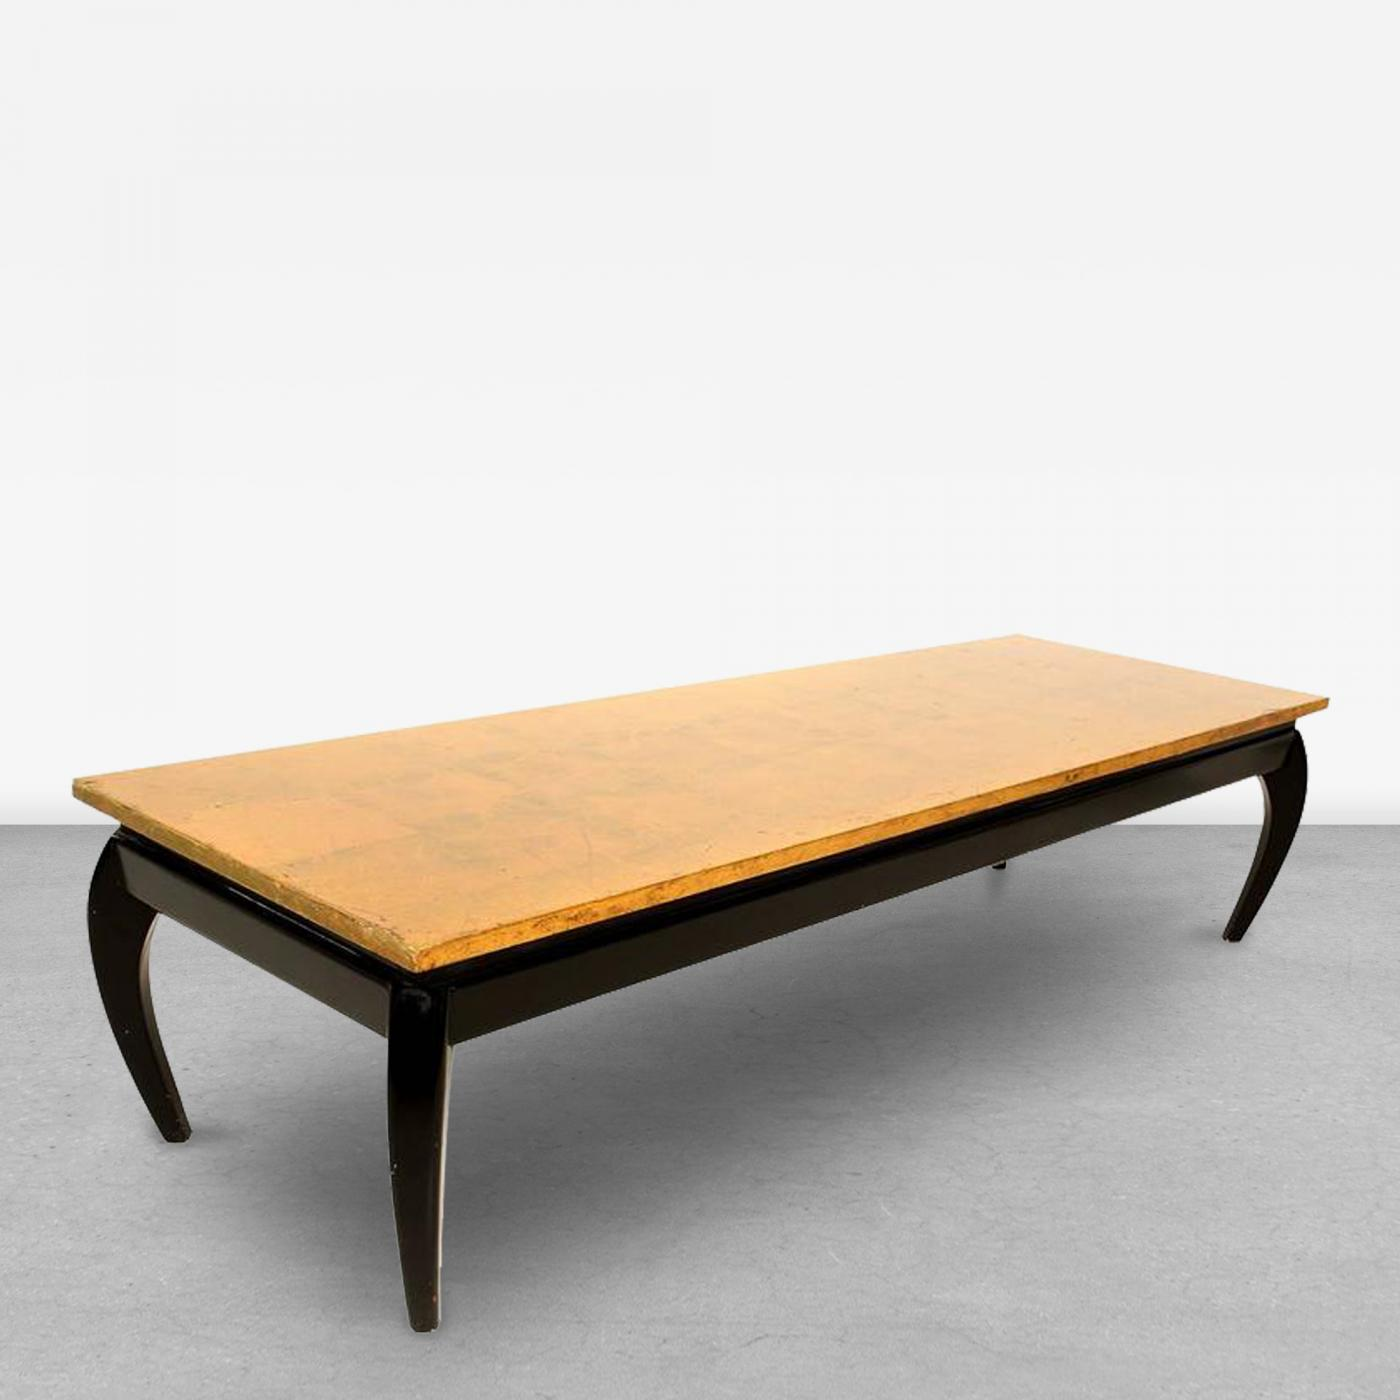 Gold Leaf and Black Lacquer Coffee Table after James Mont